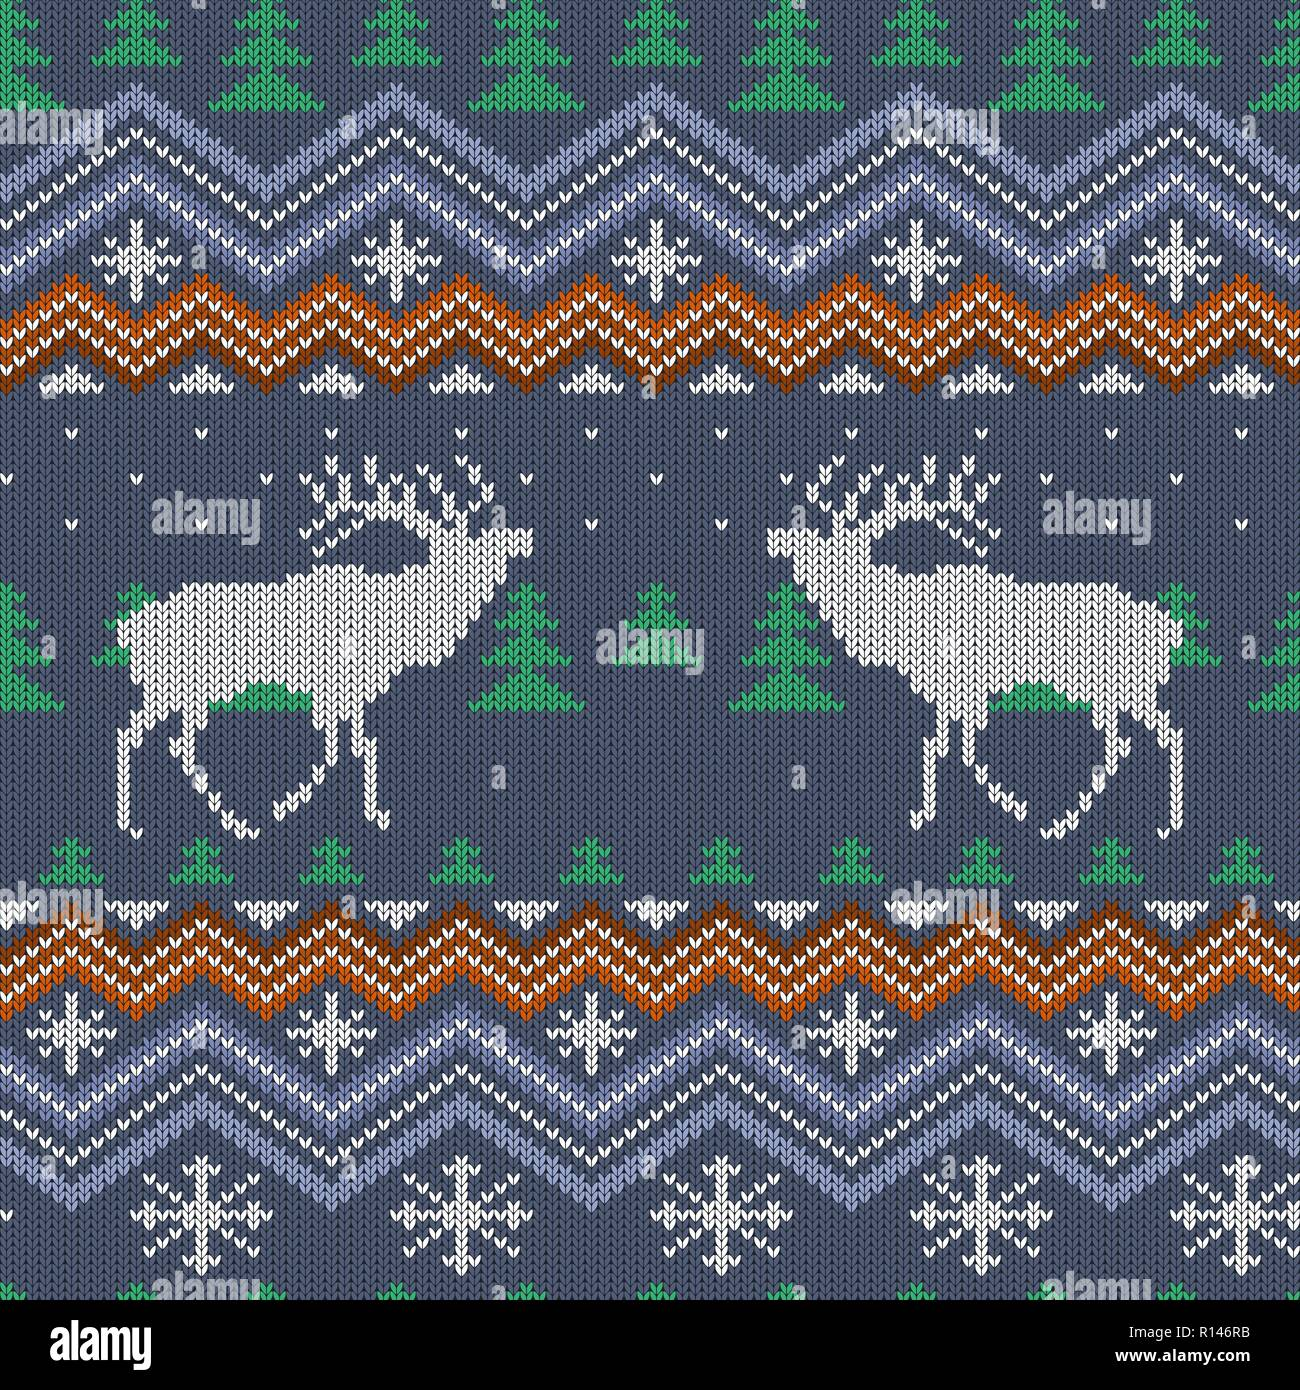 Winter knitted woolen seamless pattern with reindeer and Christmas trees - Stock Vector